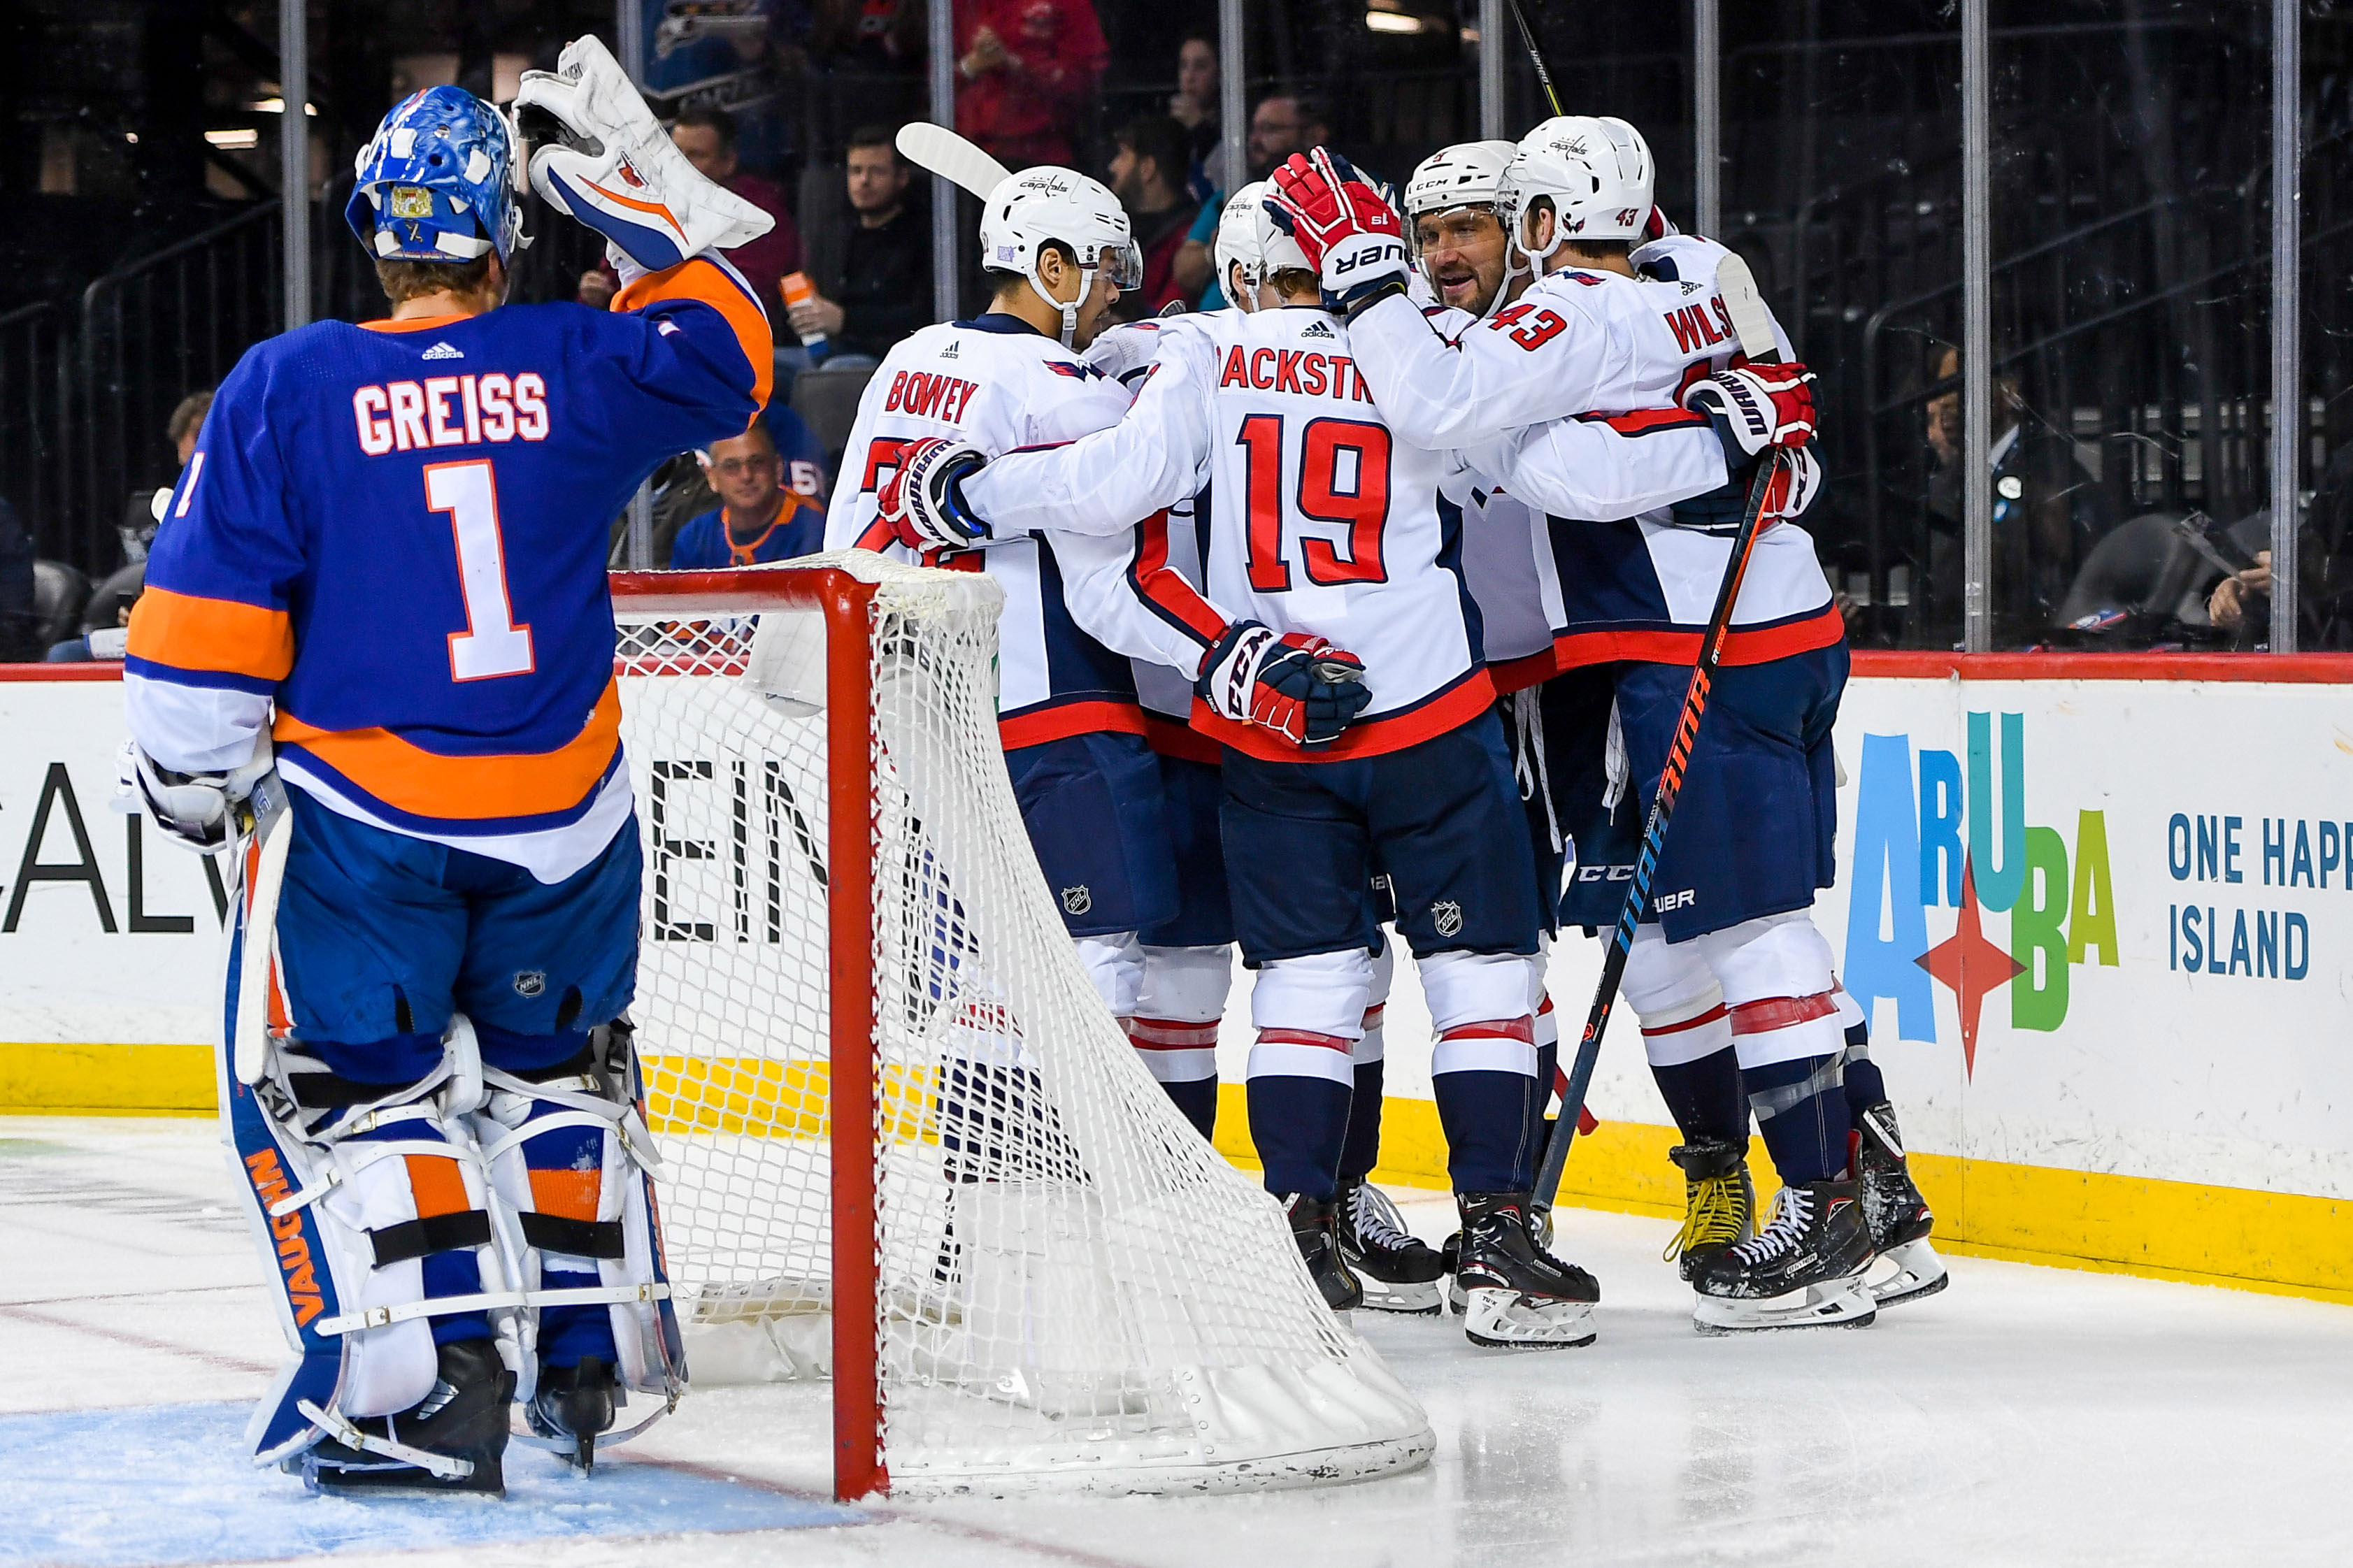 Nov 26, 2018; Brooklyn, NY, USA; Washington Capitals celebrate the goal by right wing Tom Wilson (43) against the New York Islanders during the first period at Barclays Center. Mandatory Credit: Dennis Schneidler-USA TODAY Sports